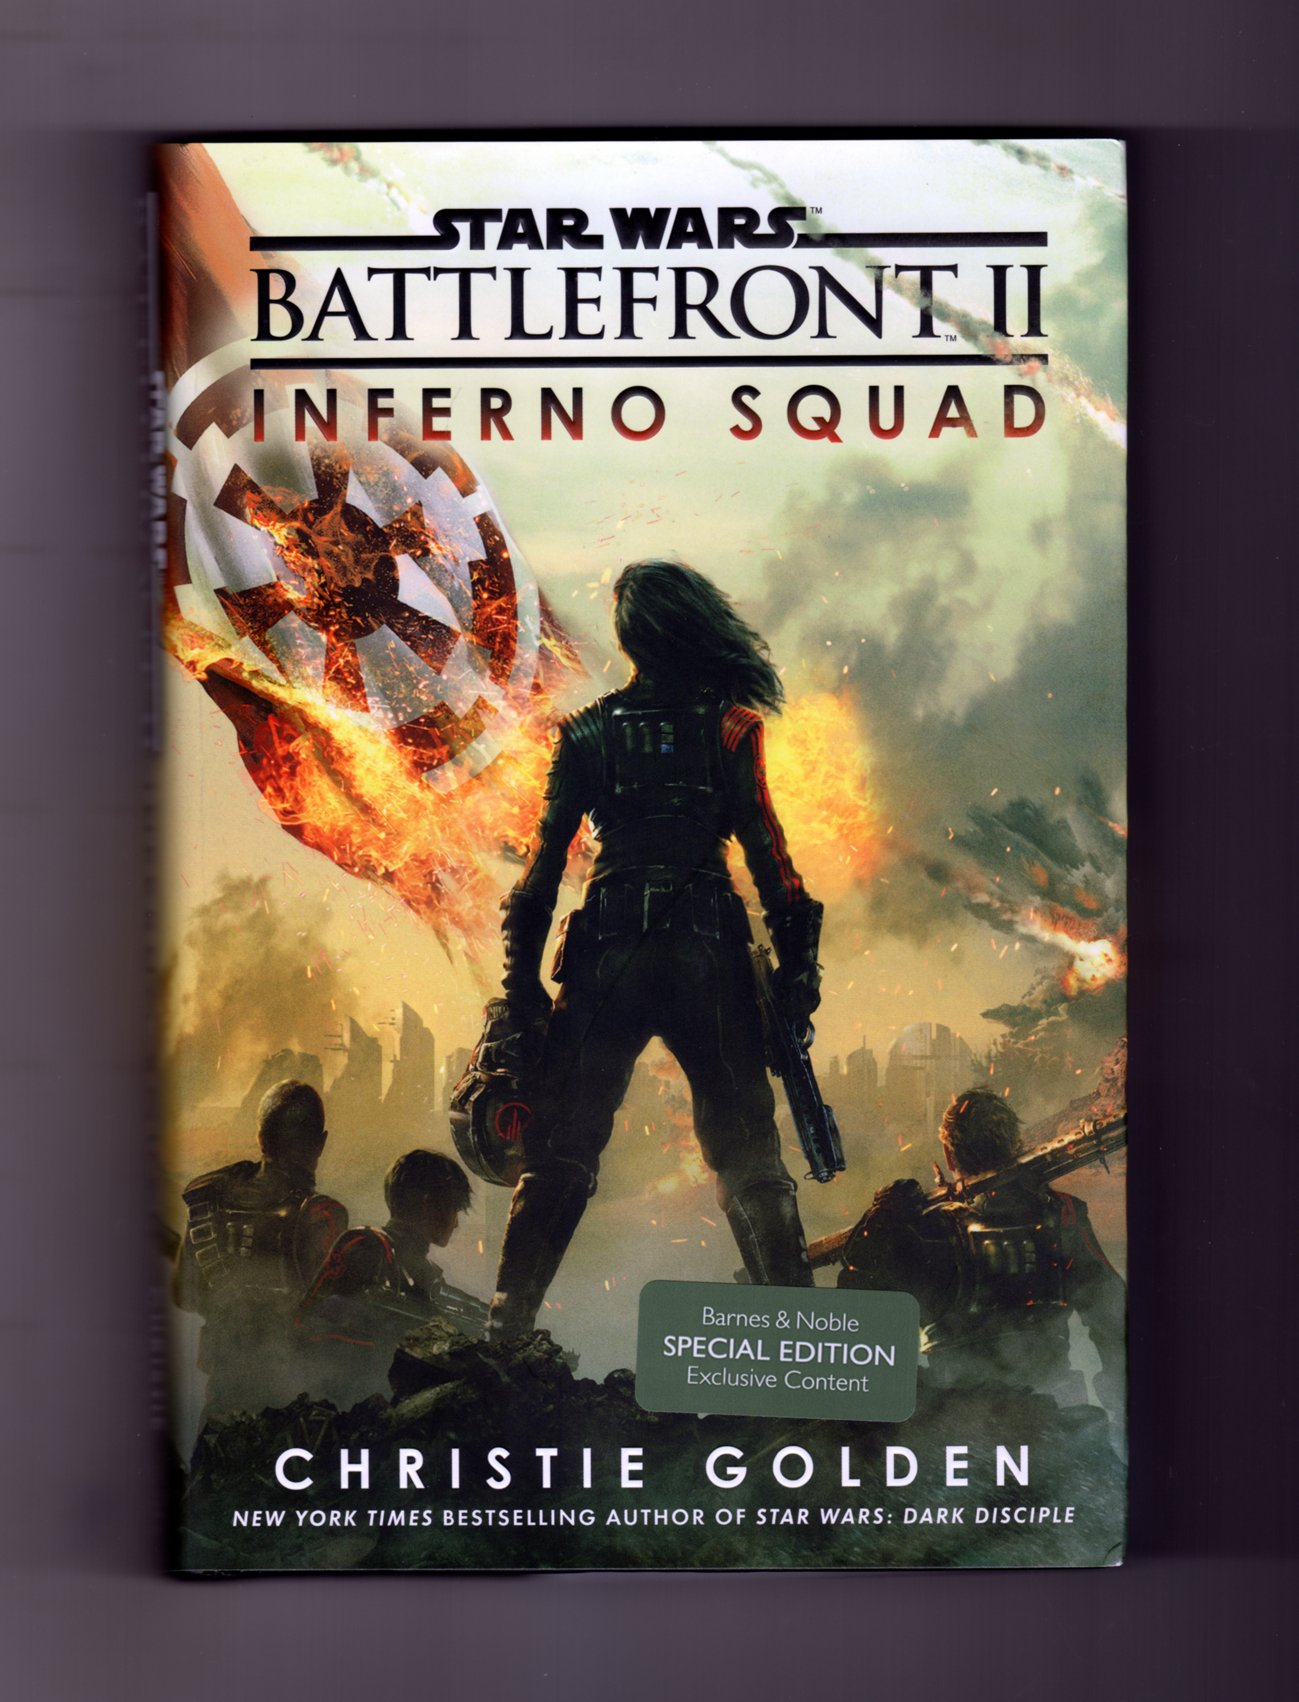 Star Wars Battlefront Ii Inferno Squad Special Edition Exclusive Content First Edition First Printing Amazon Co Uk 9781524797348 Books